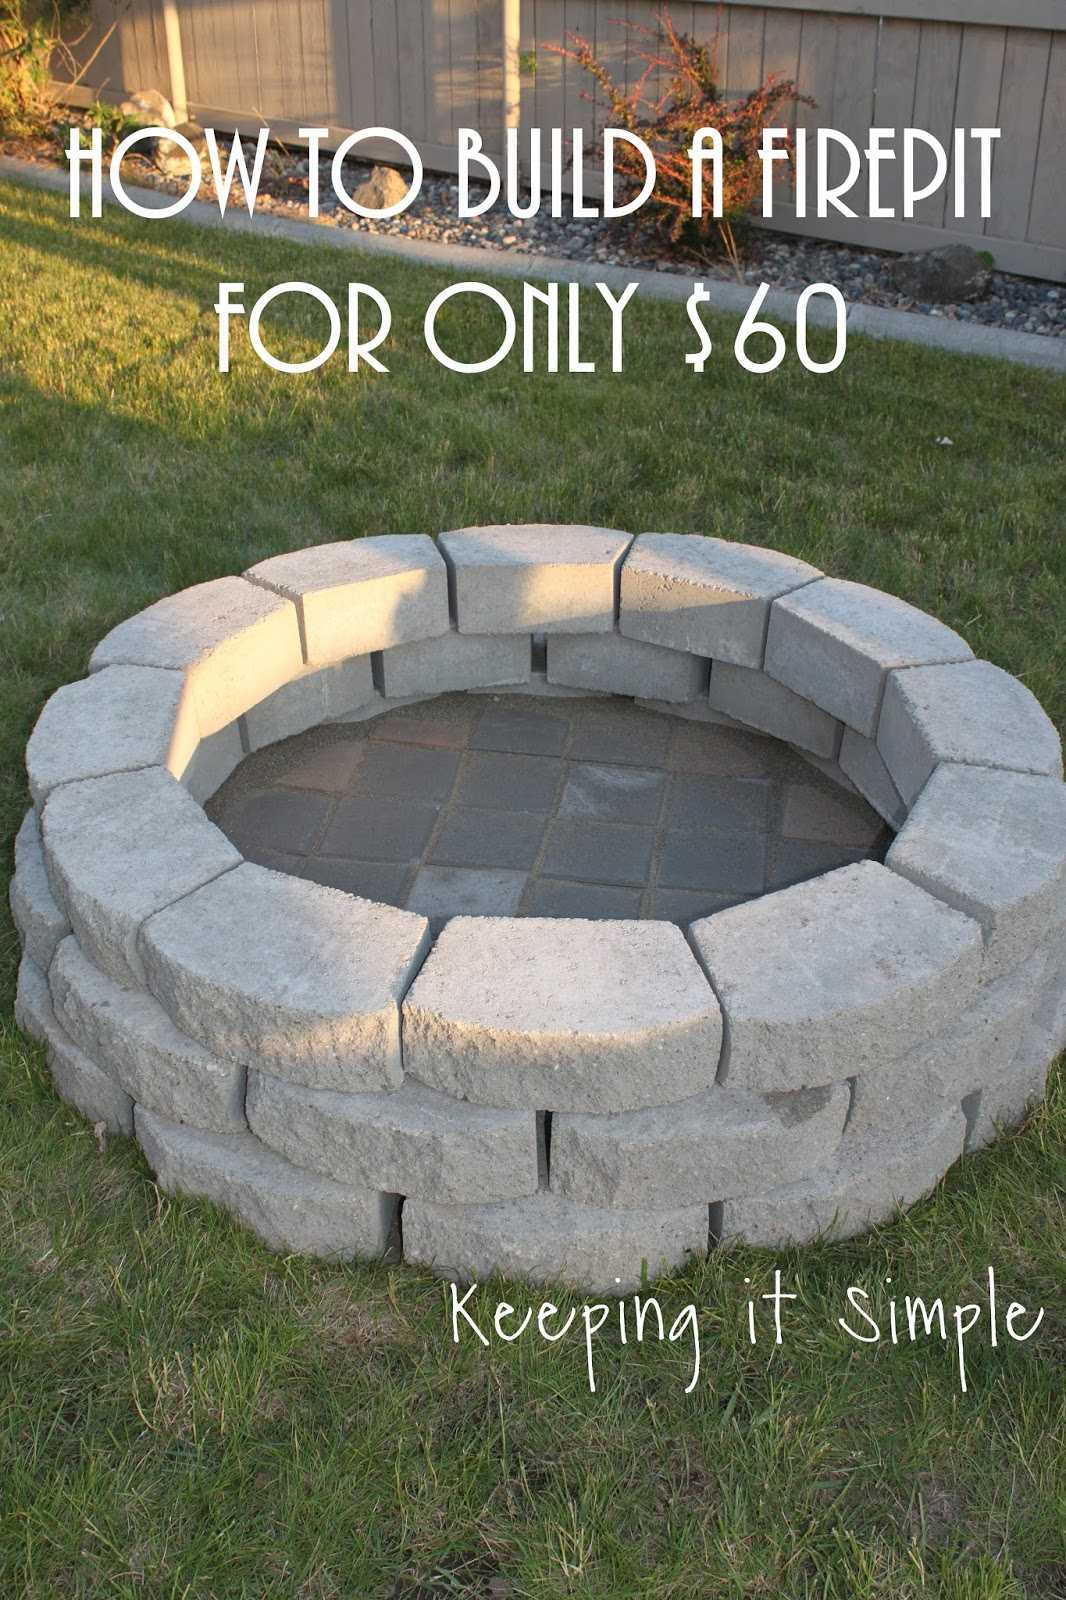 Everyone loves a beautiful but affordable DIY project and this fire pit made from grey pavers is incredible! Via Keeping It Simple Crafts